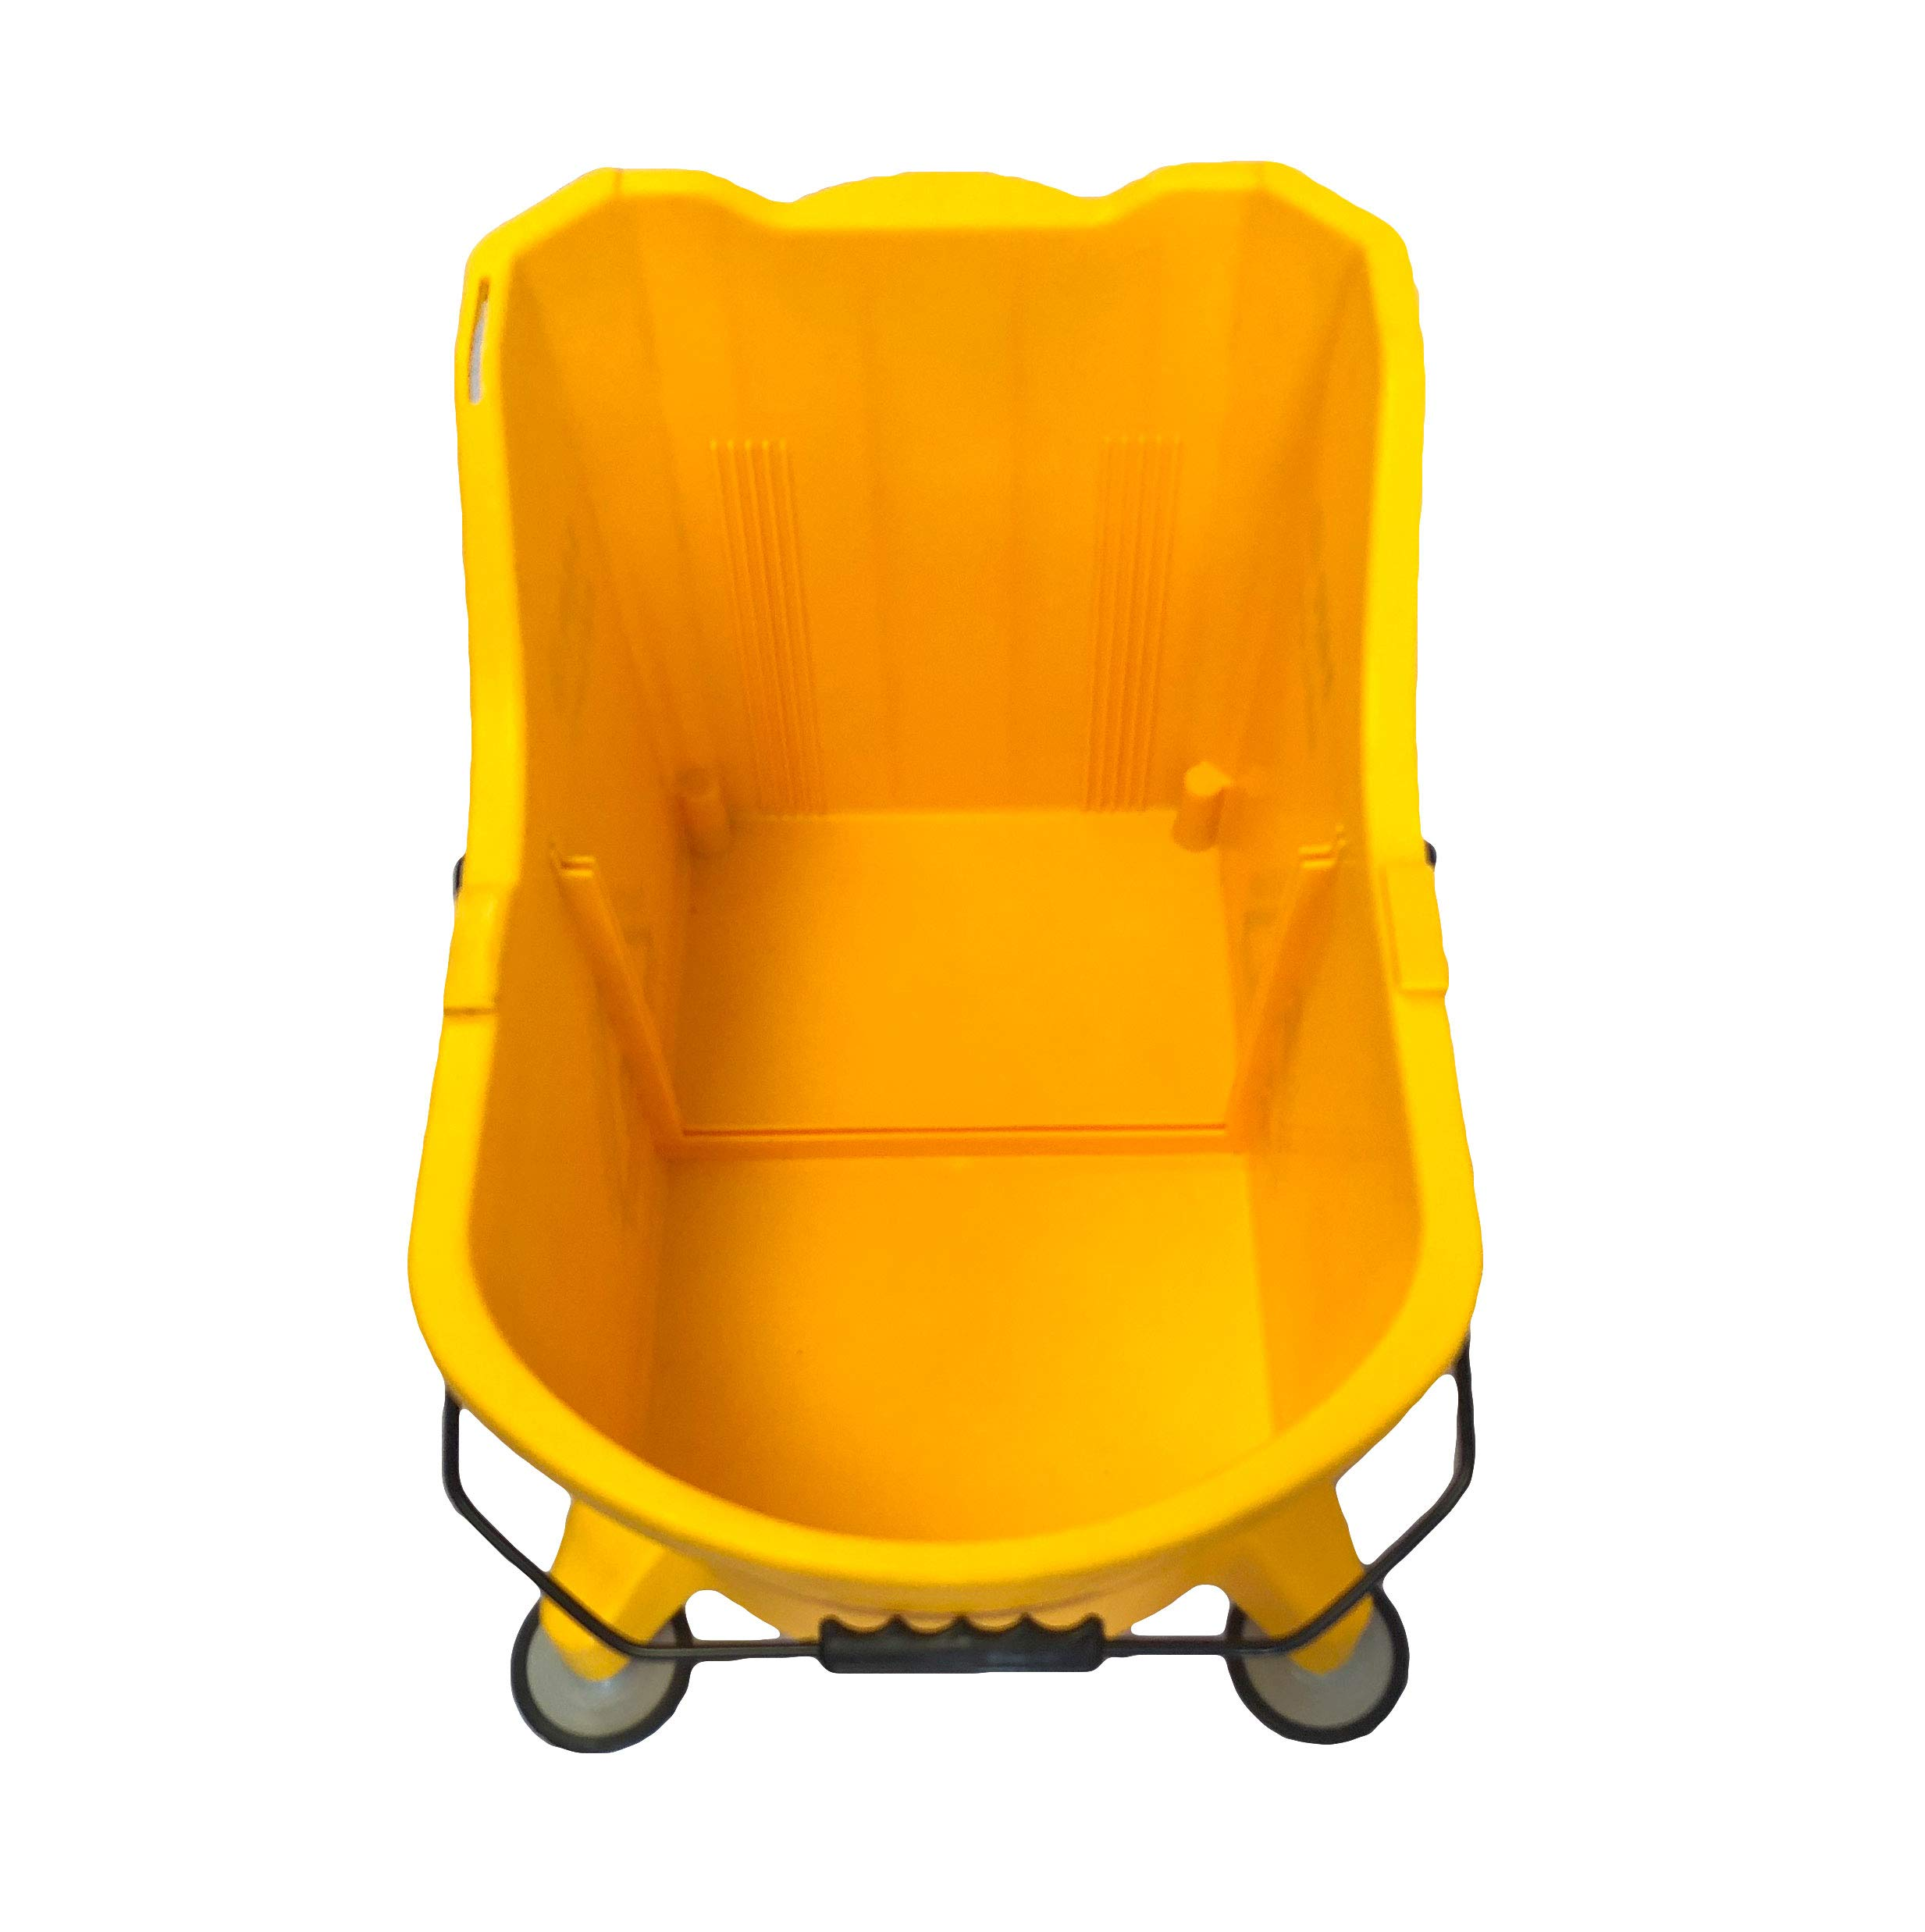 Hero EZ-LIFT Dual Cavity Commercial Mop Bucket with Wringer on Wheels, includes Dirty Water Bucket (36-Quart   9 Gallon Cleaning Bucket) by HERO IMPORTS (Image #2)